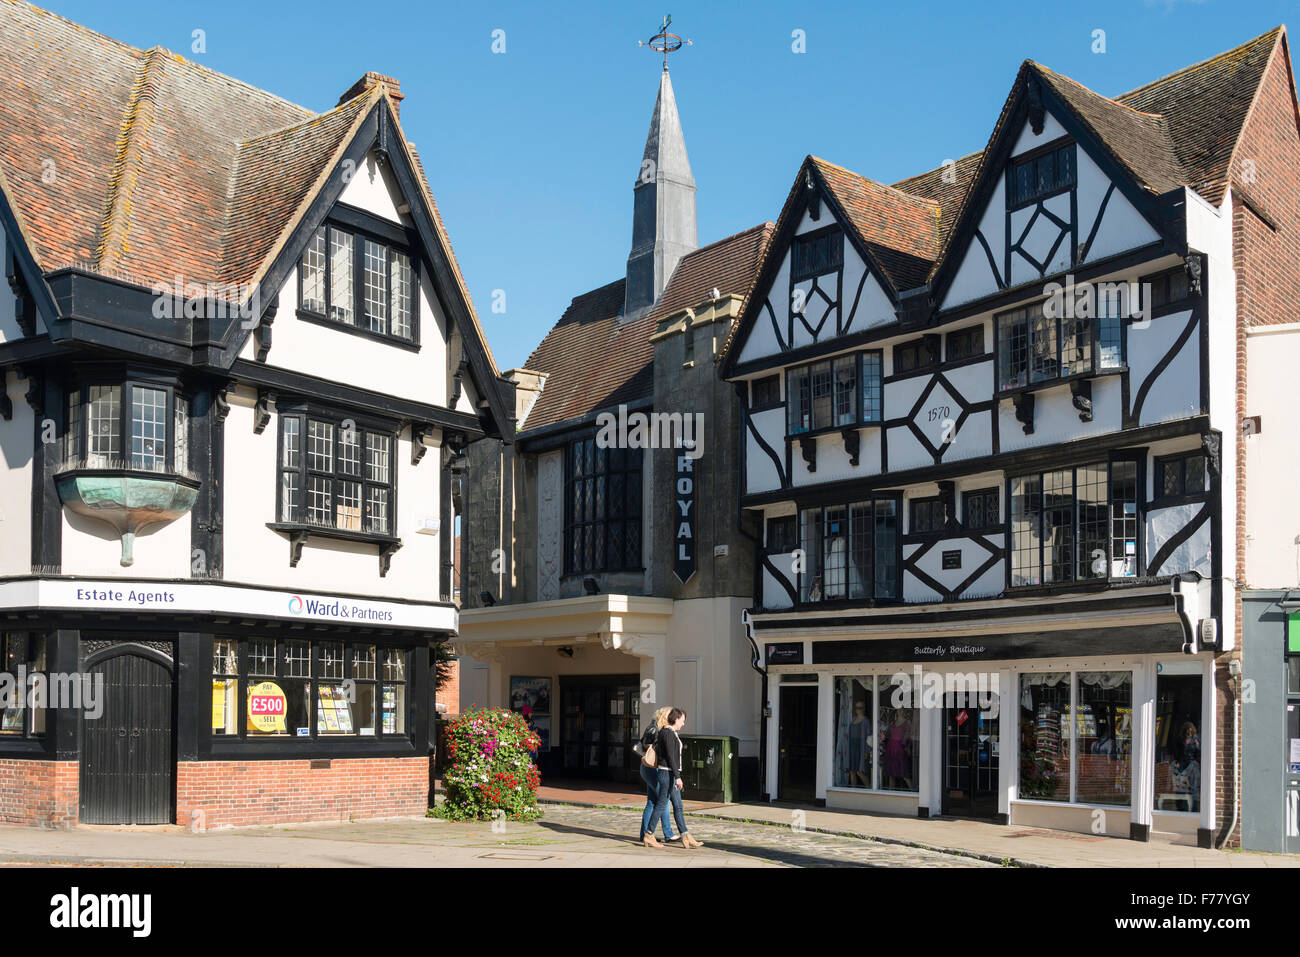 Tudor Architecture tudor buildings stock photos & tudor buildings stock images - alamy